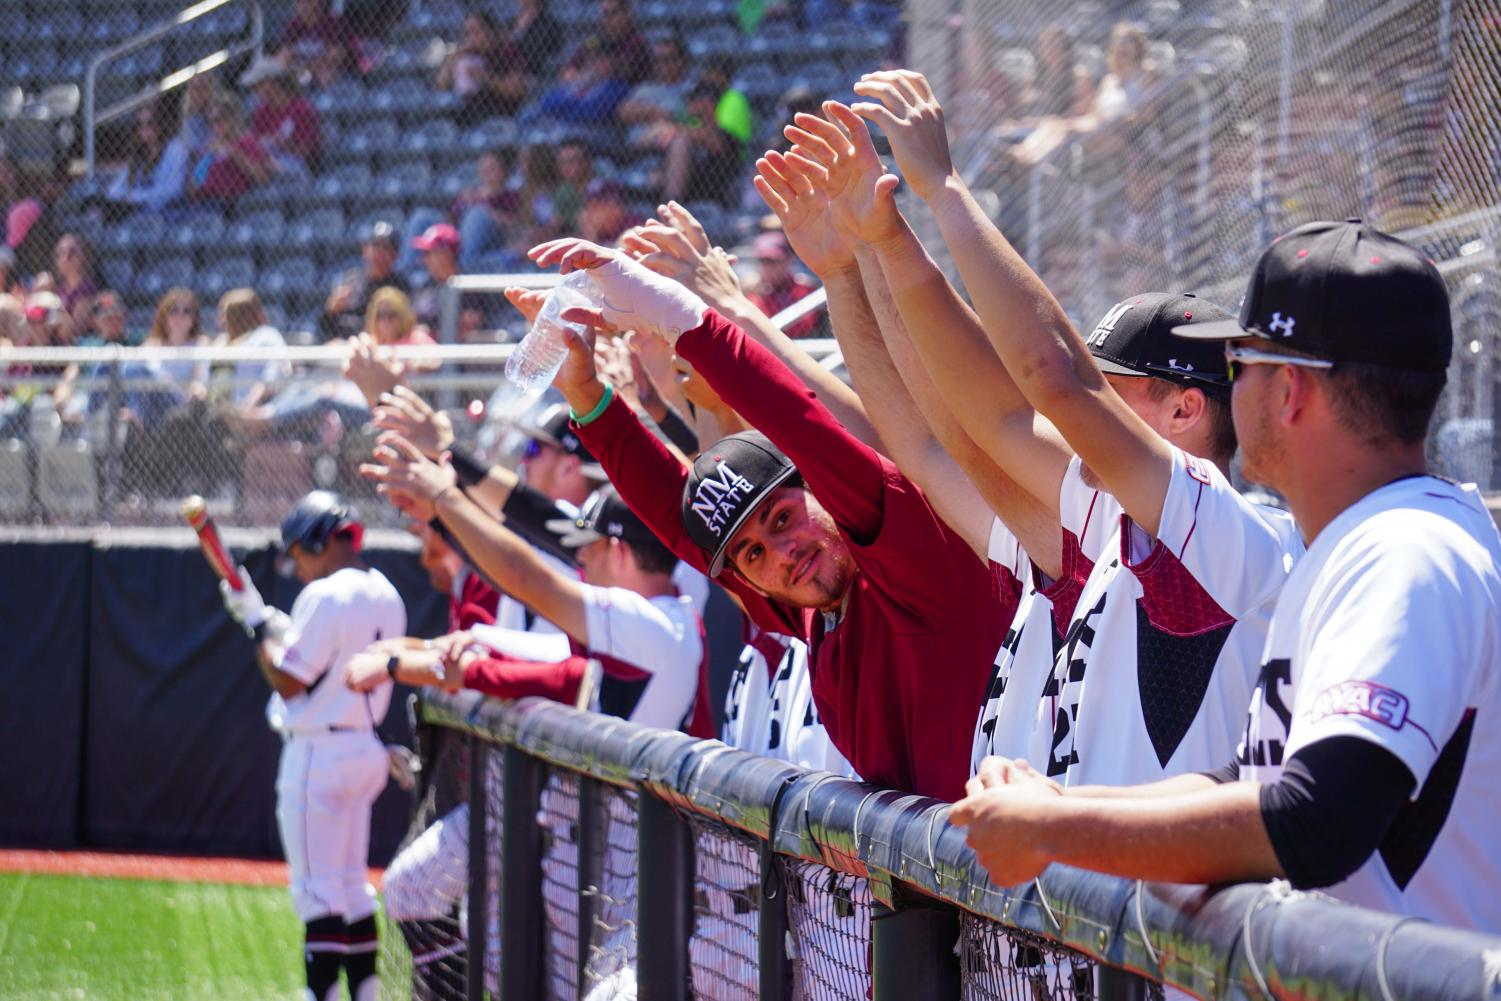 The New Mexico State Baseball team celebrates after one of their comrades  achieves a base hit; the team has an overall record of 27-14 and 11-4 in the WAC.